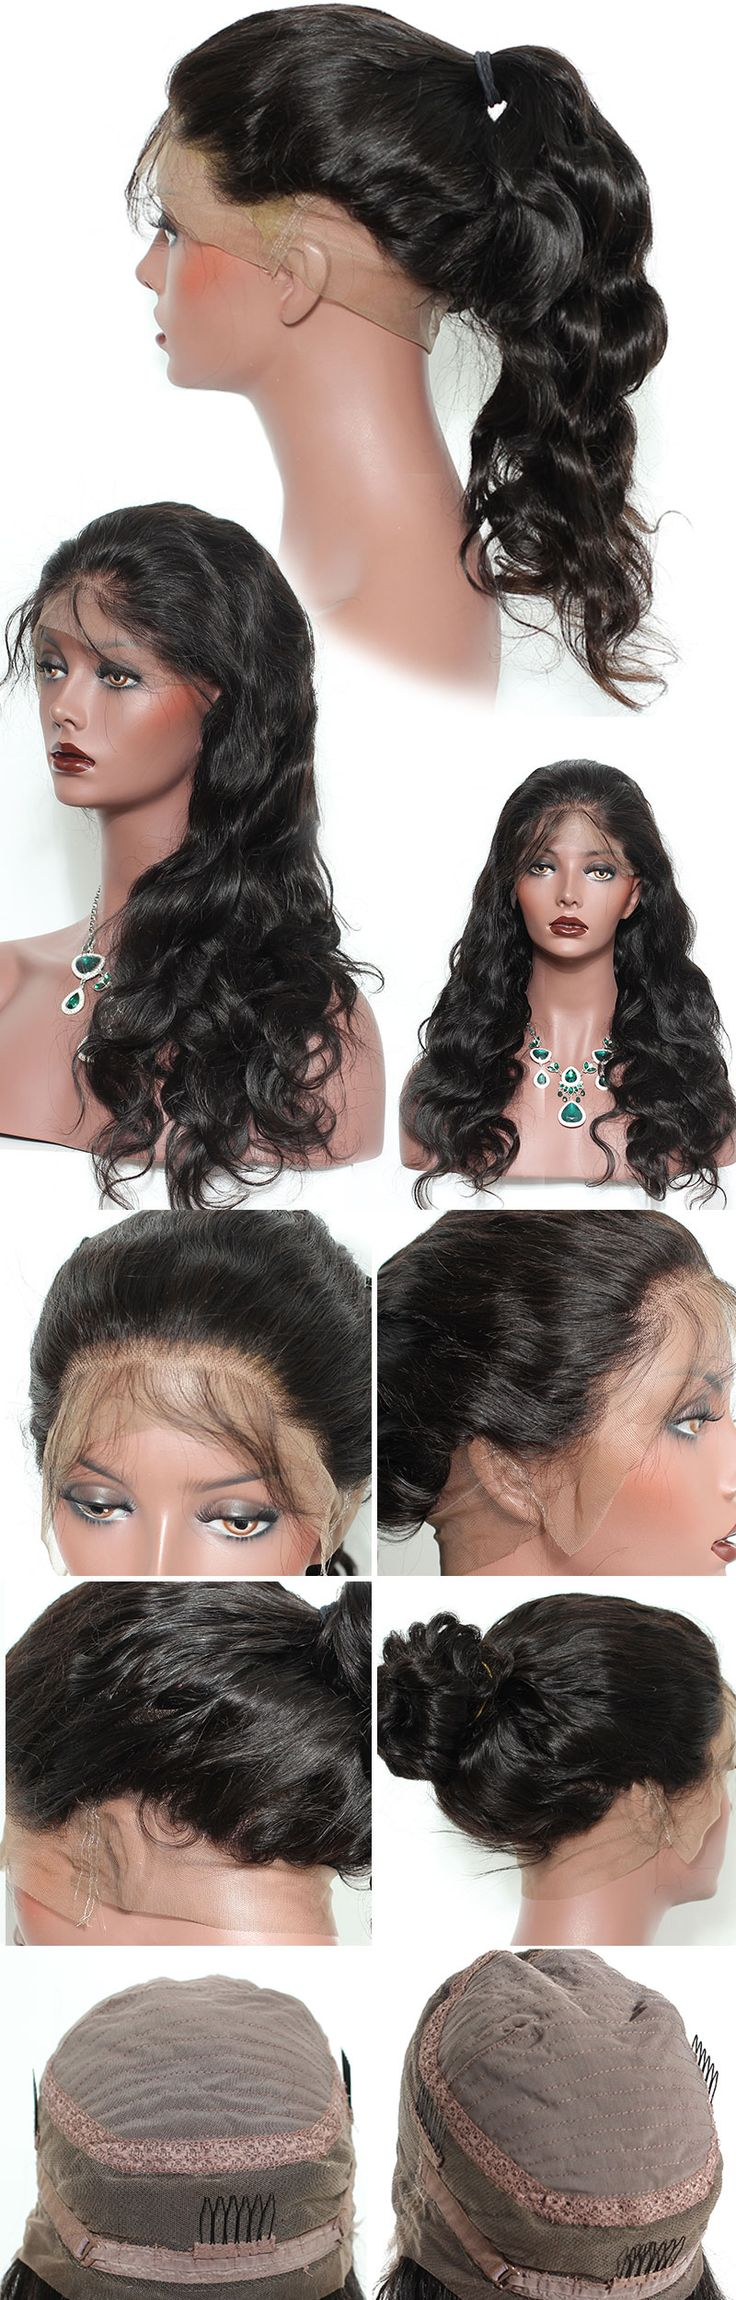 360 Lace Frontal Wigs 180% Density Brazilian Body Wave Remy Hair 100% Human Hair Wigs For Black Women Pre Plucked